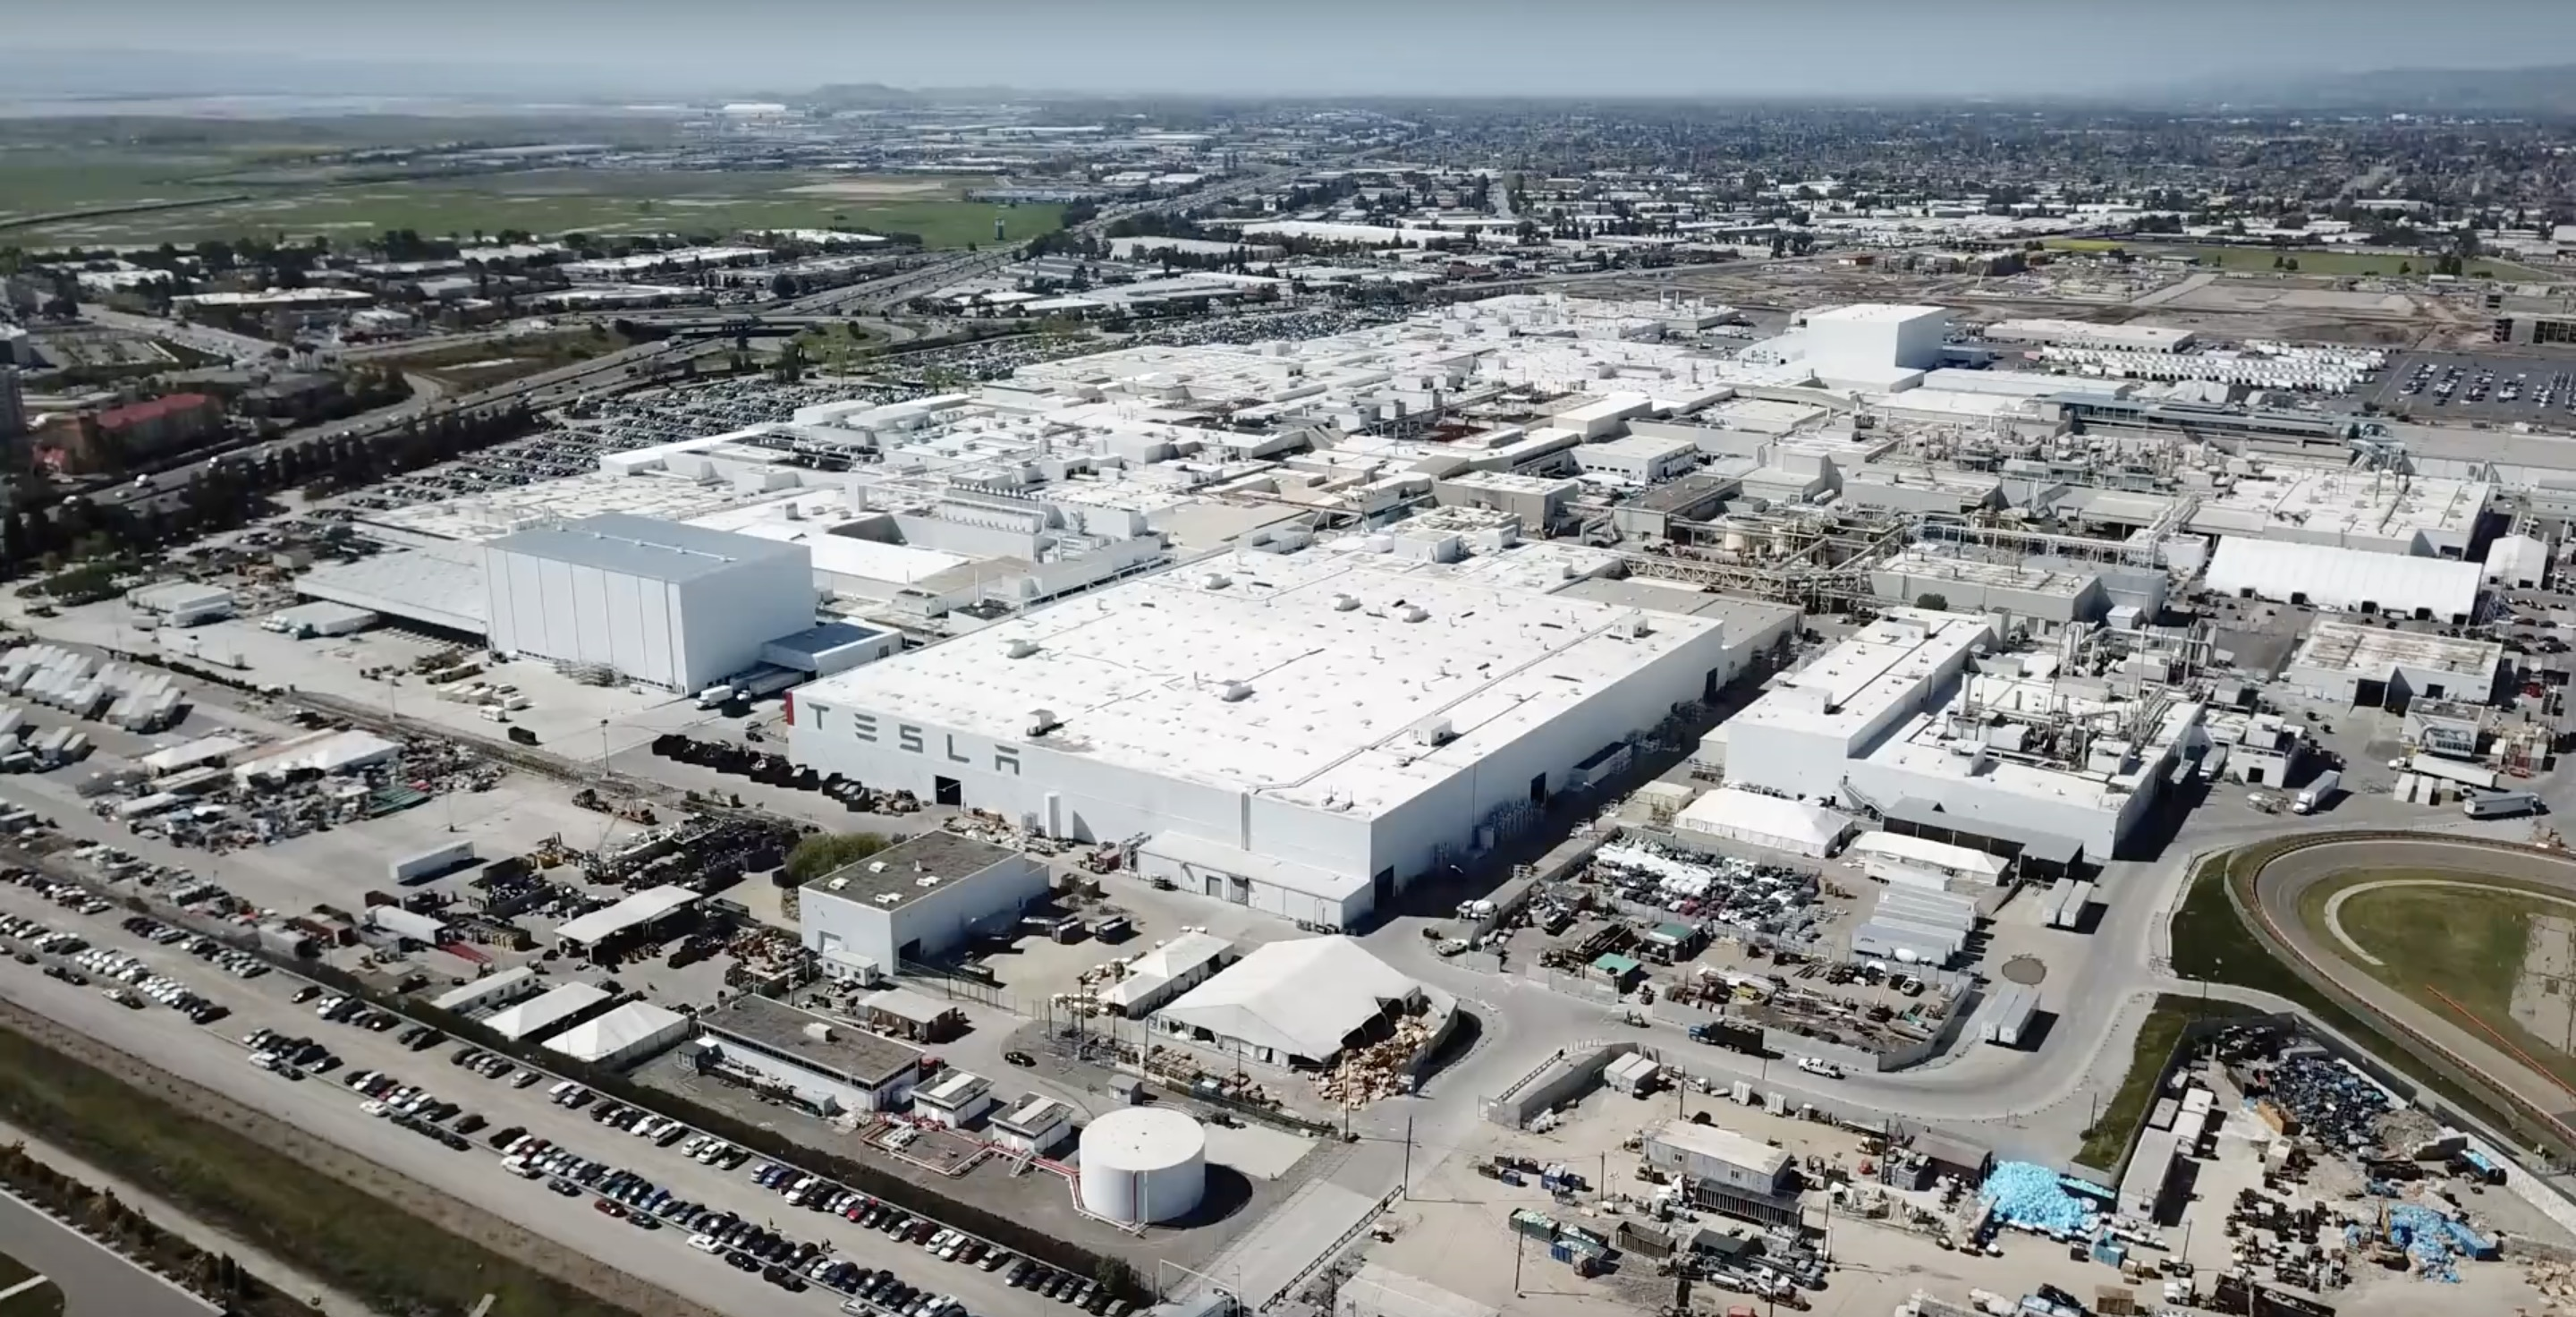 Tesla is working on 5th assembly line at Fremont factory ahead of Model Y production - Electrek